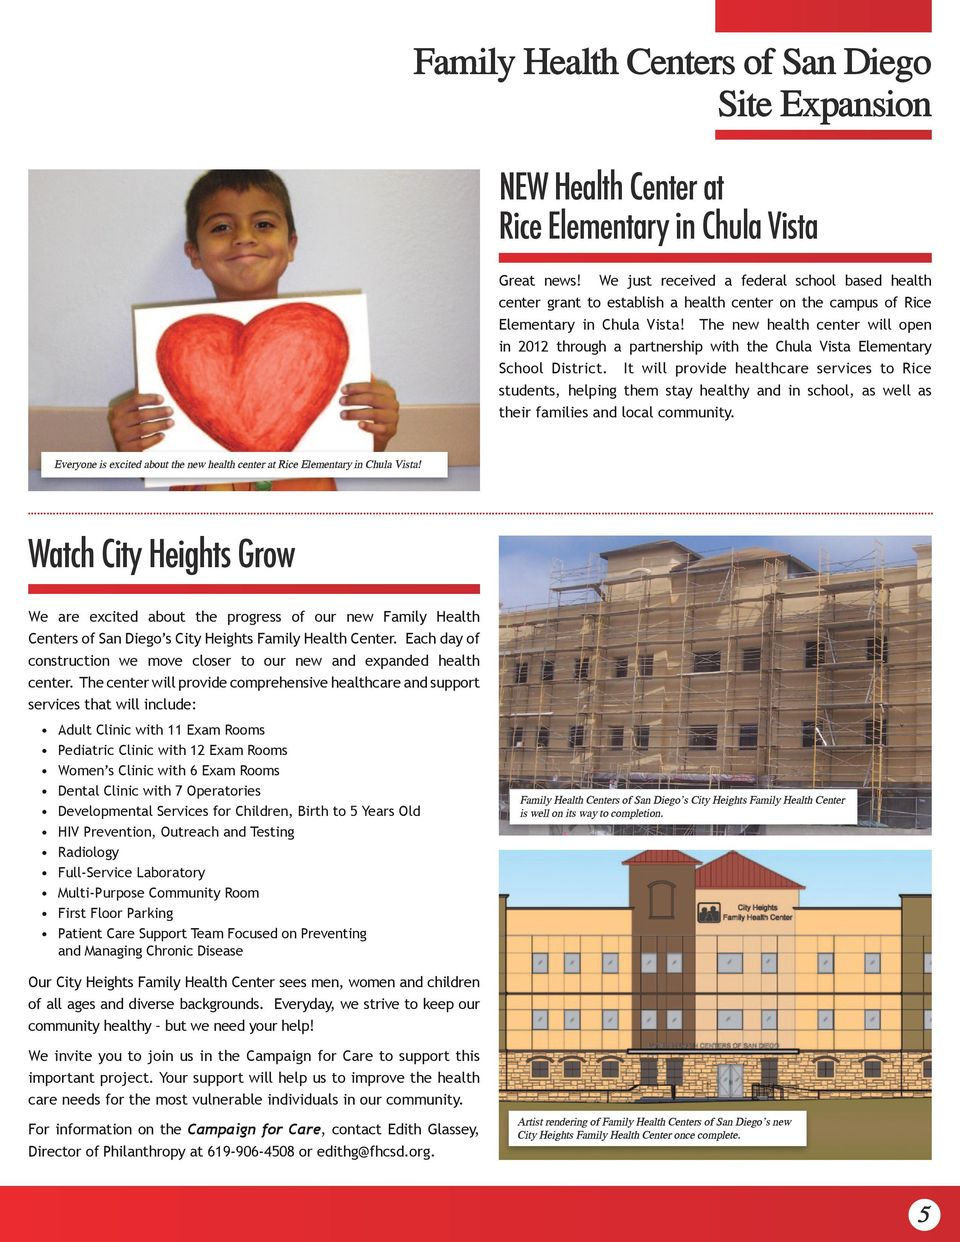 The new health center will open in 2012 through a partnership with the Chula Vista Elementary School District.